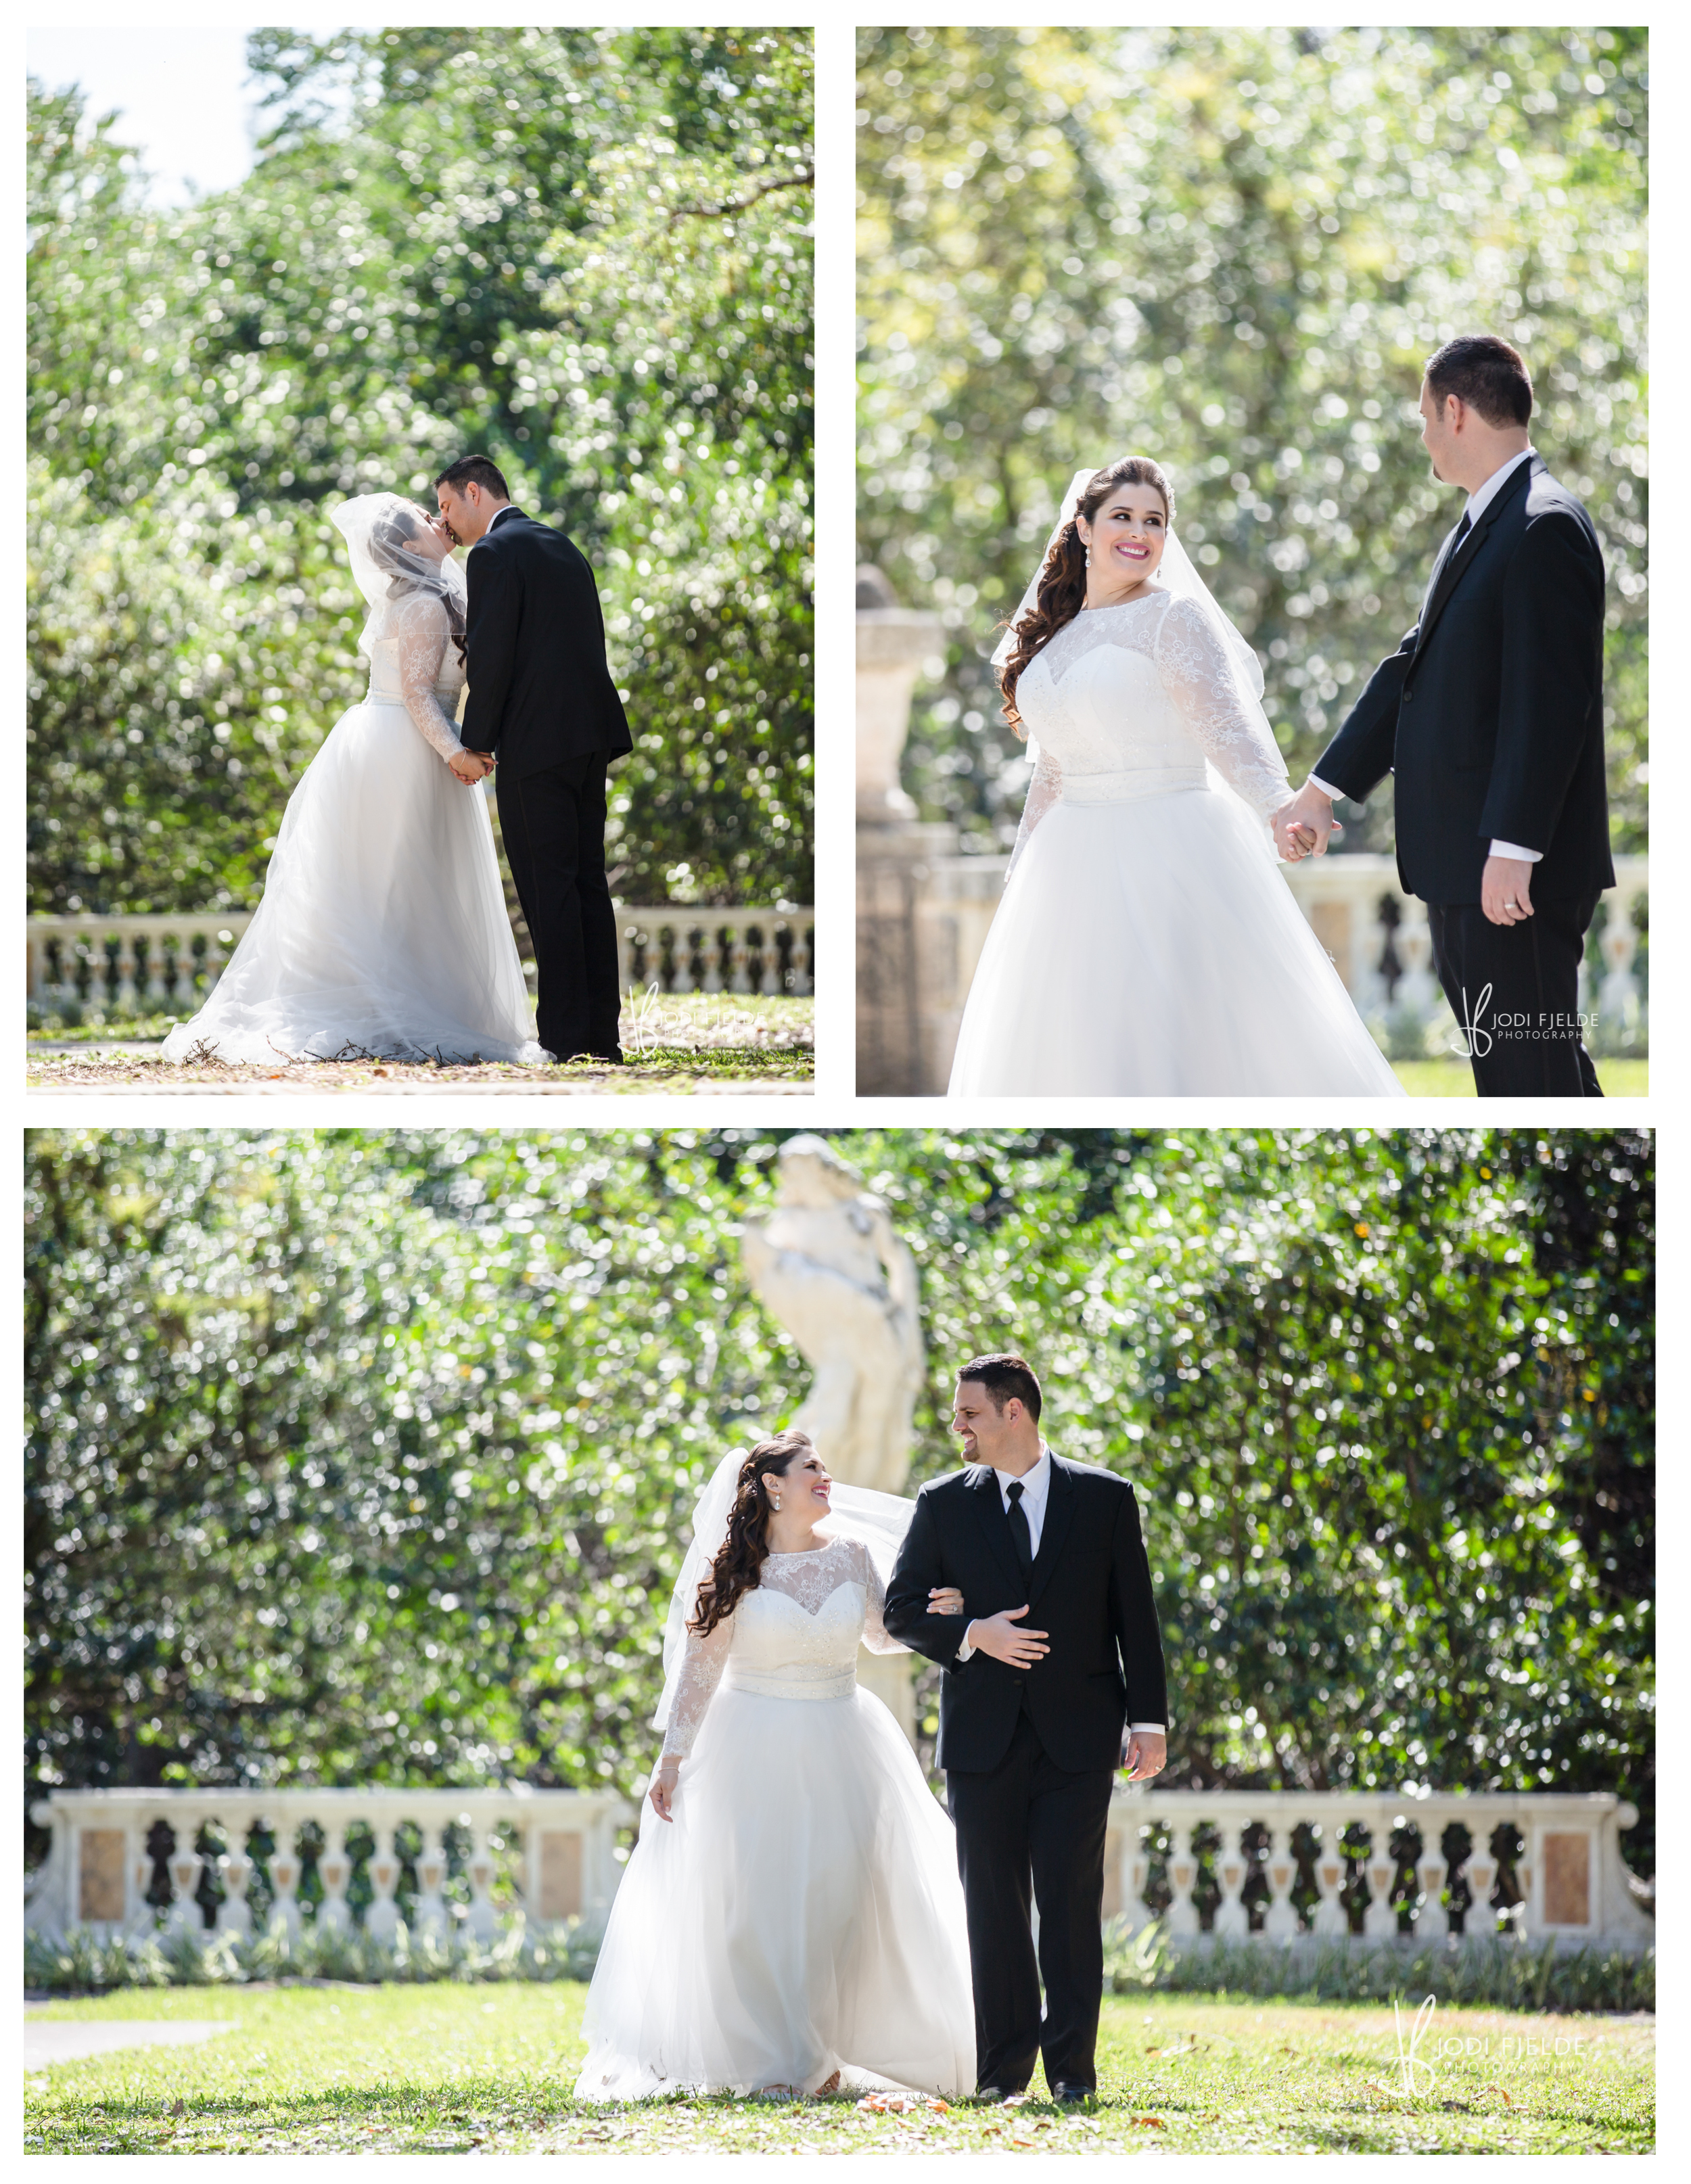 Vizcaya_Miami_Florida_Bridal_Wedding_Portraits_Jodi_Fjelde_Photography-3.jpg